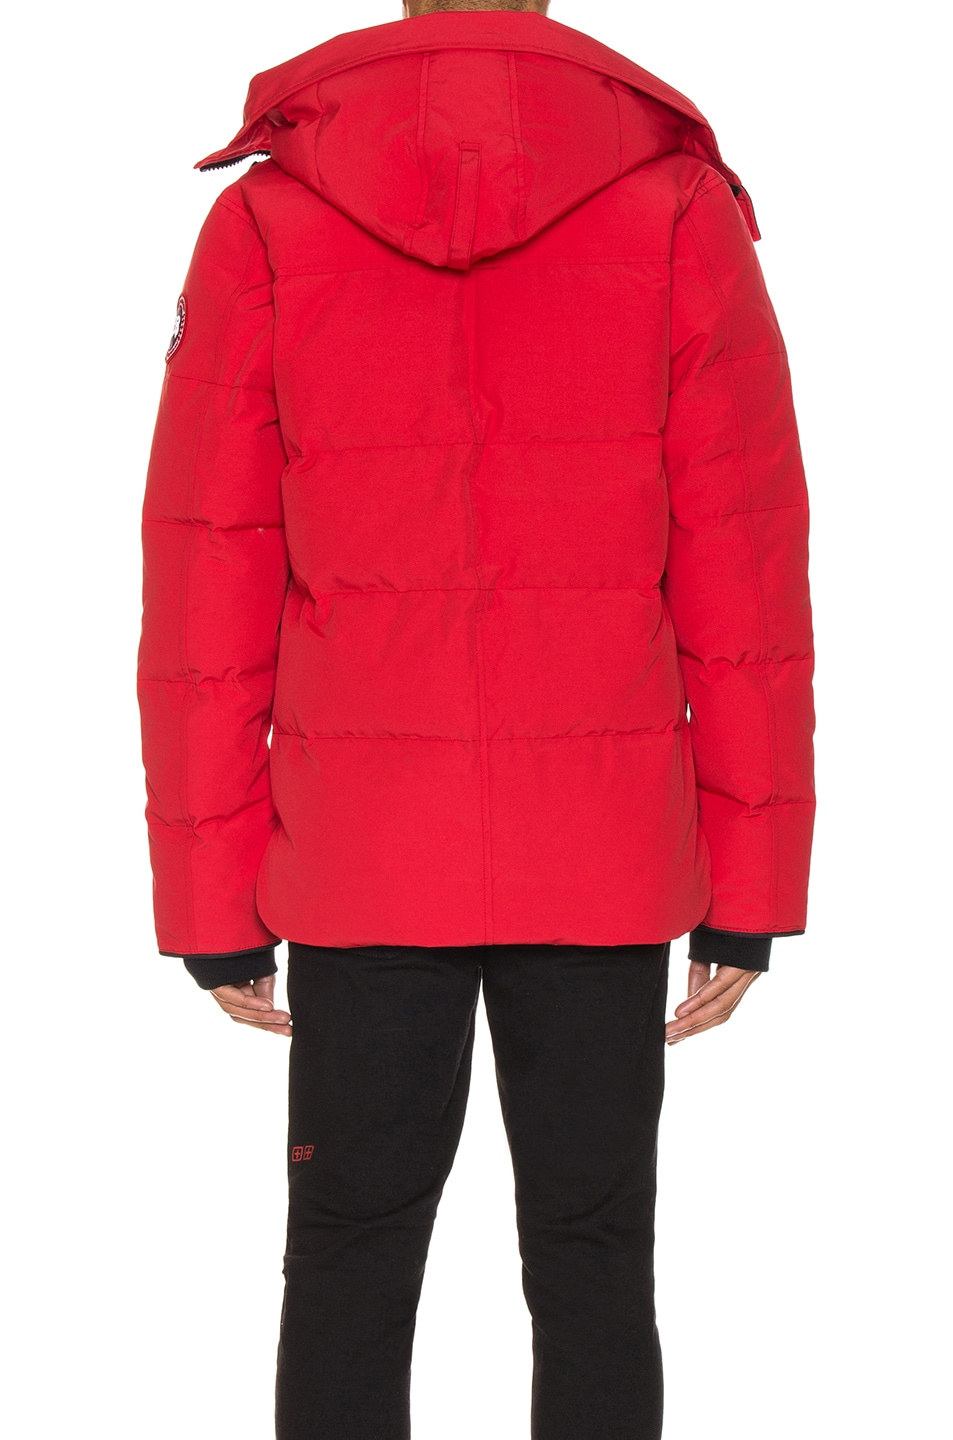 Image 5 of Canada Goose Macmillan Parka in Red